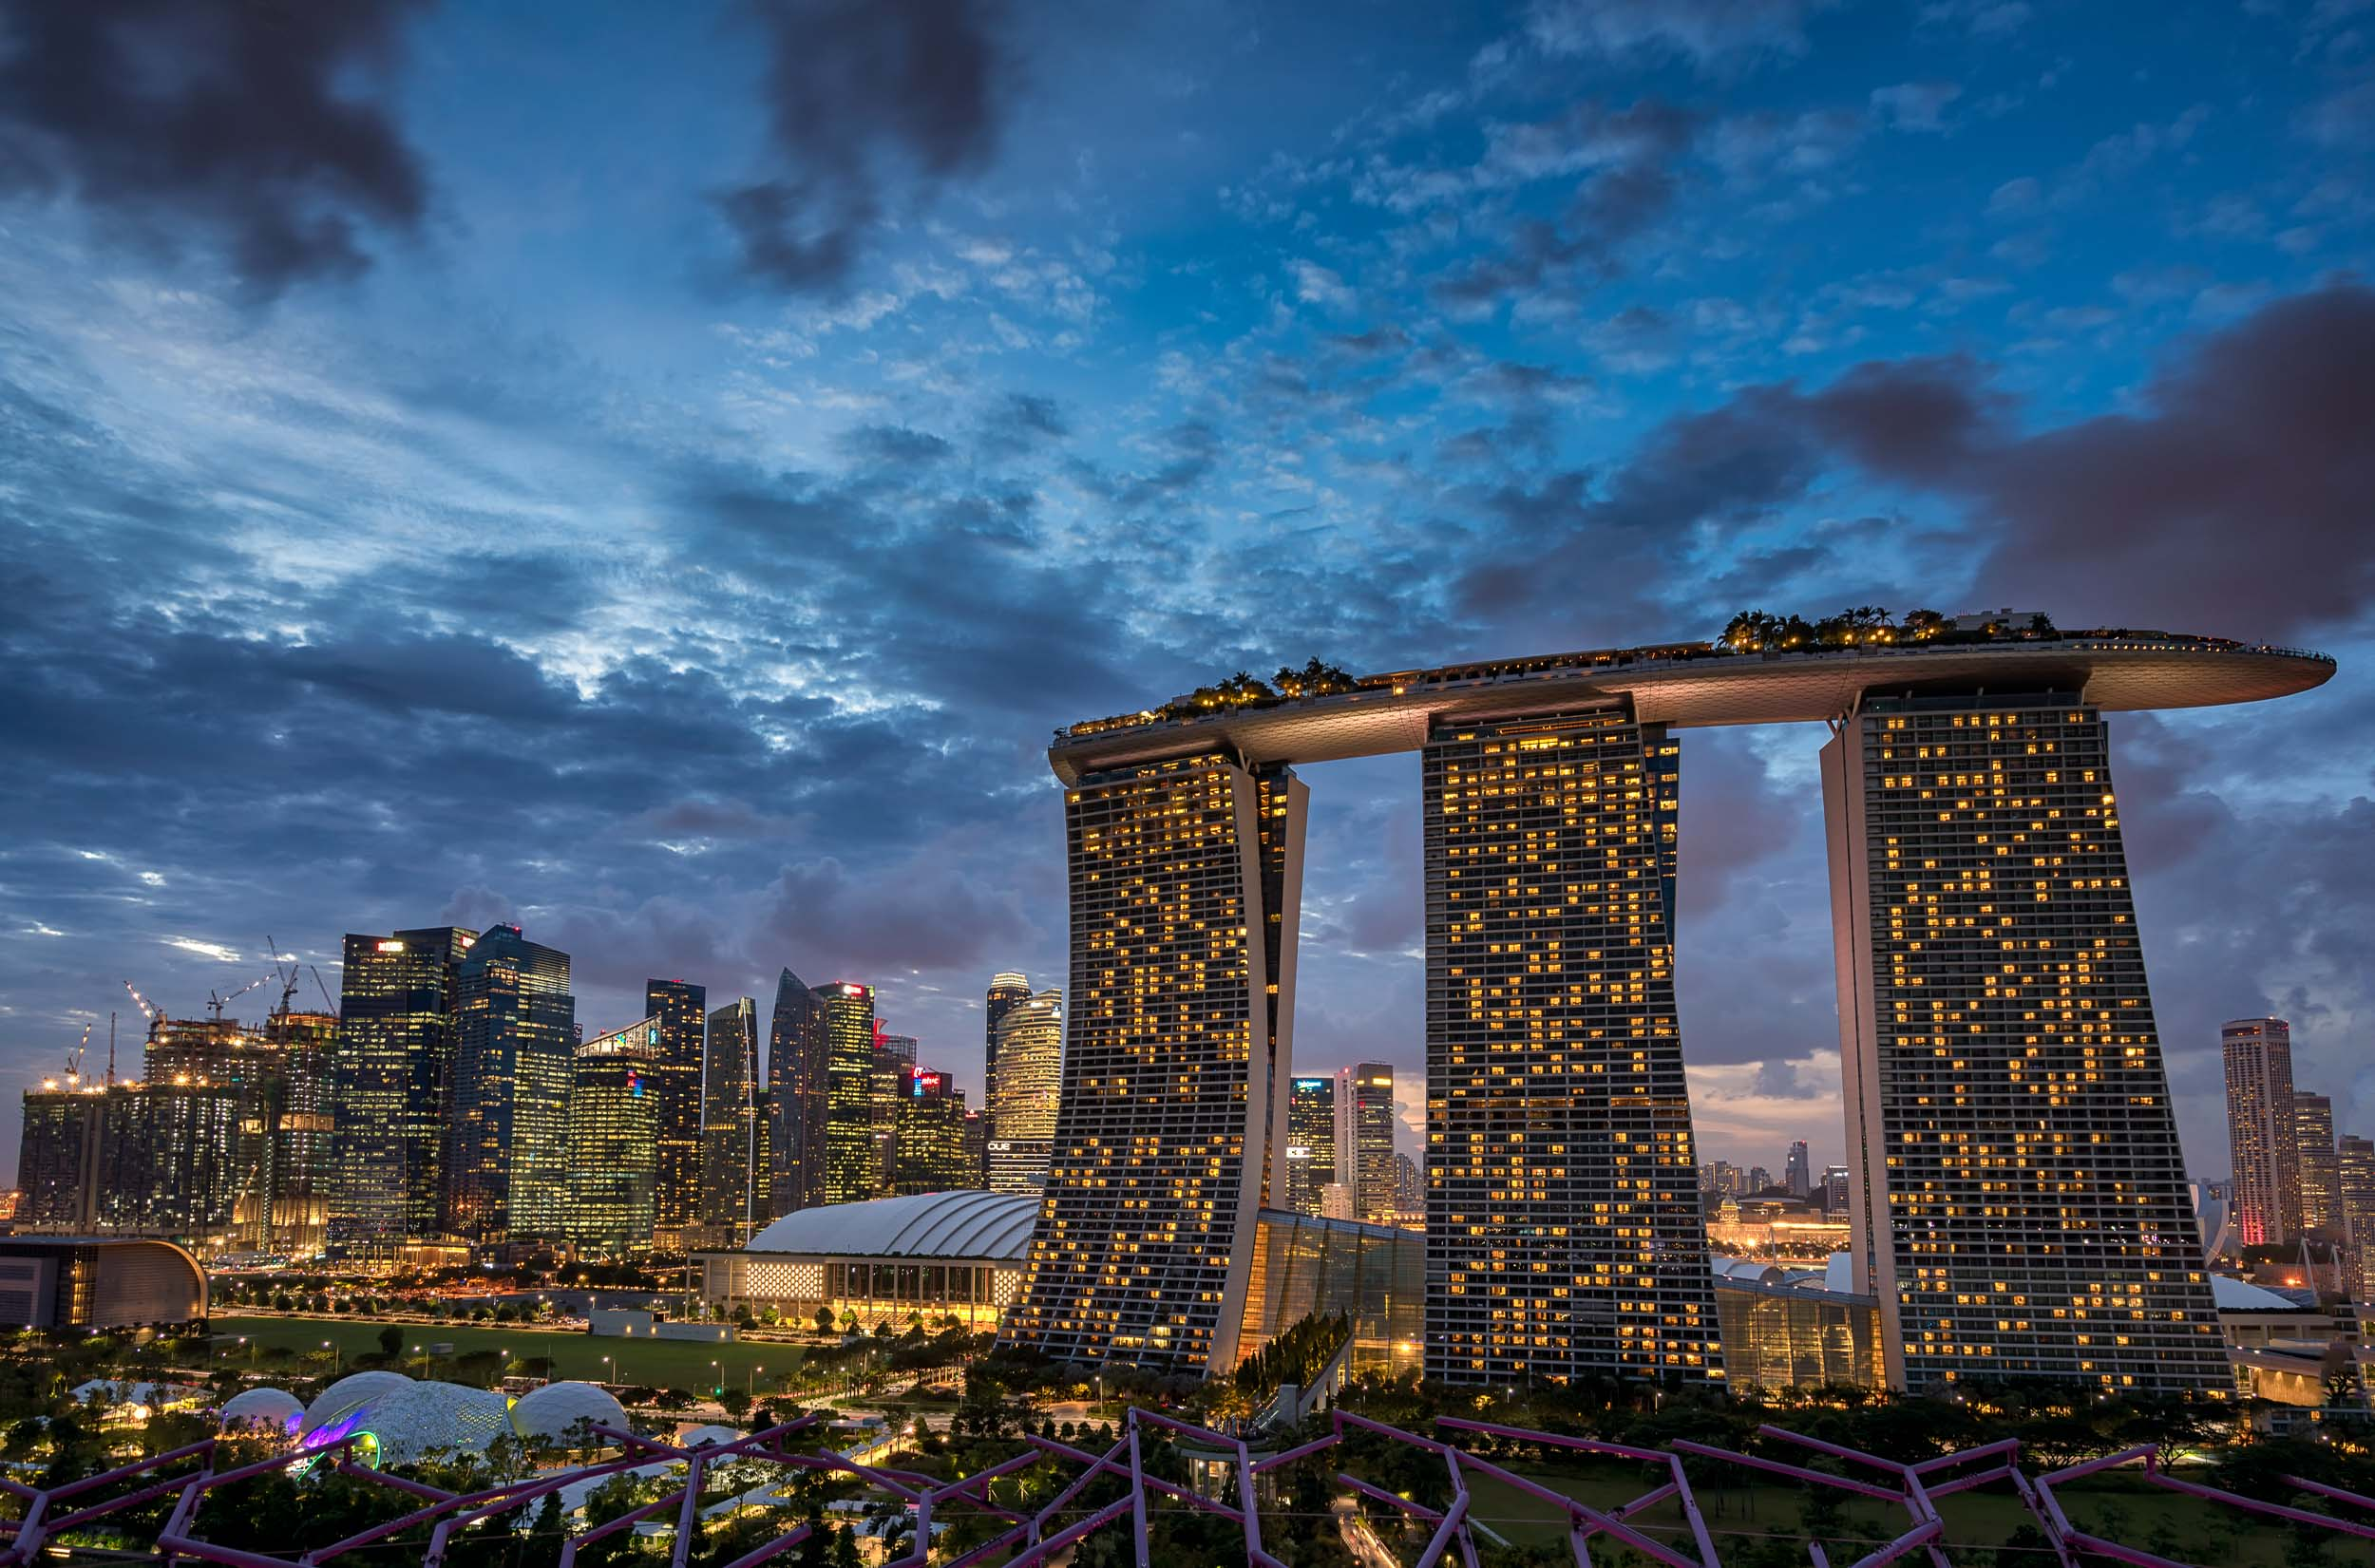 Singapore 39 S Amazing Gardens By The Bay And Marina Bay Sands Andy 39 S Travel Blog